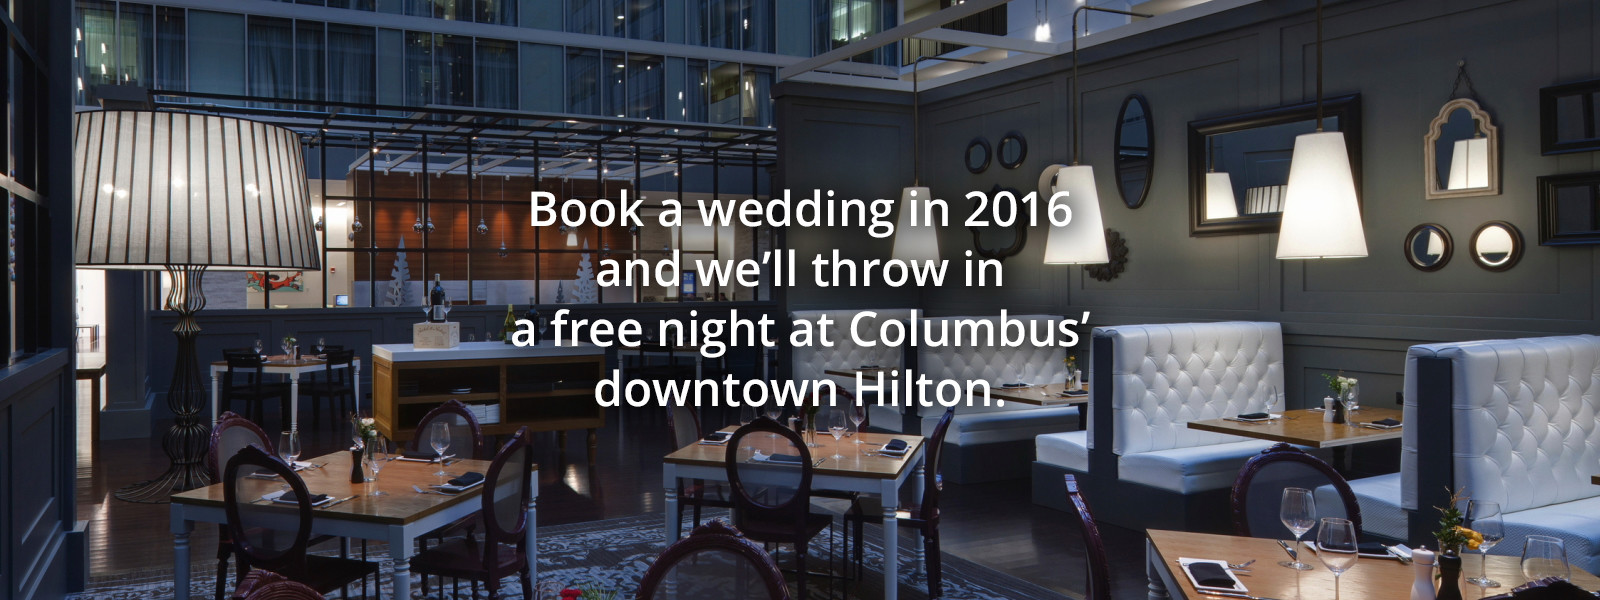 Hilton 1600×600 for Website Flat